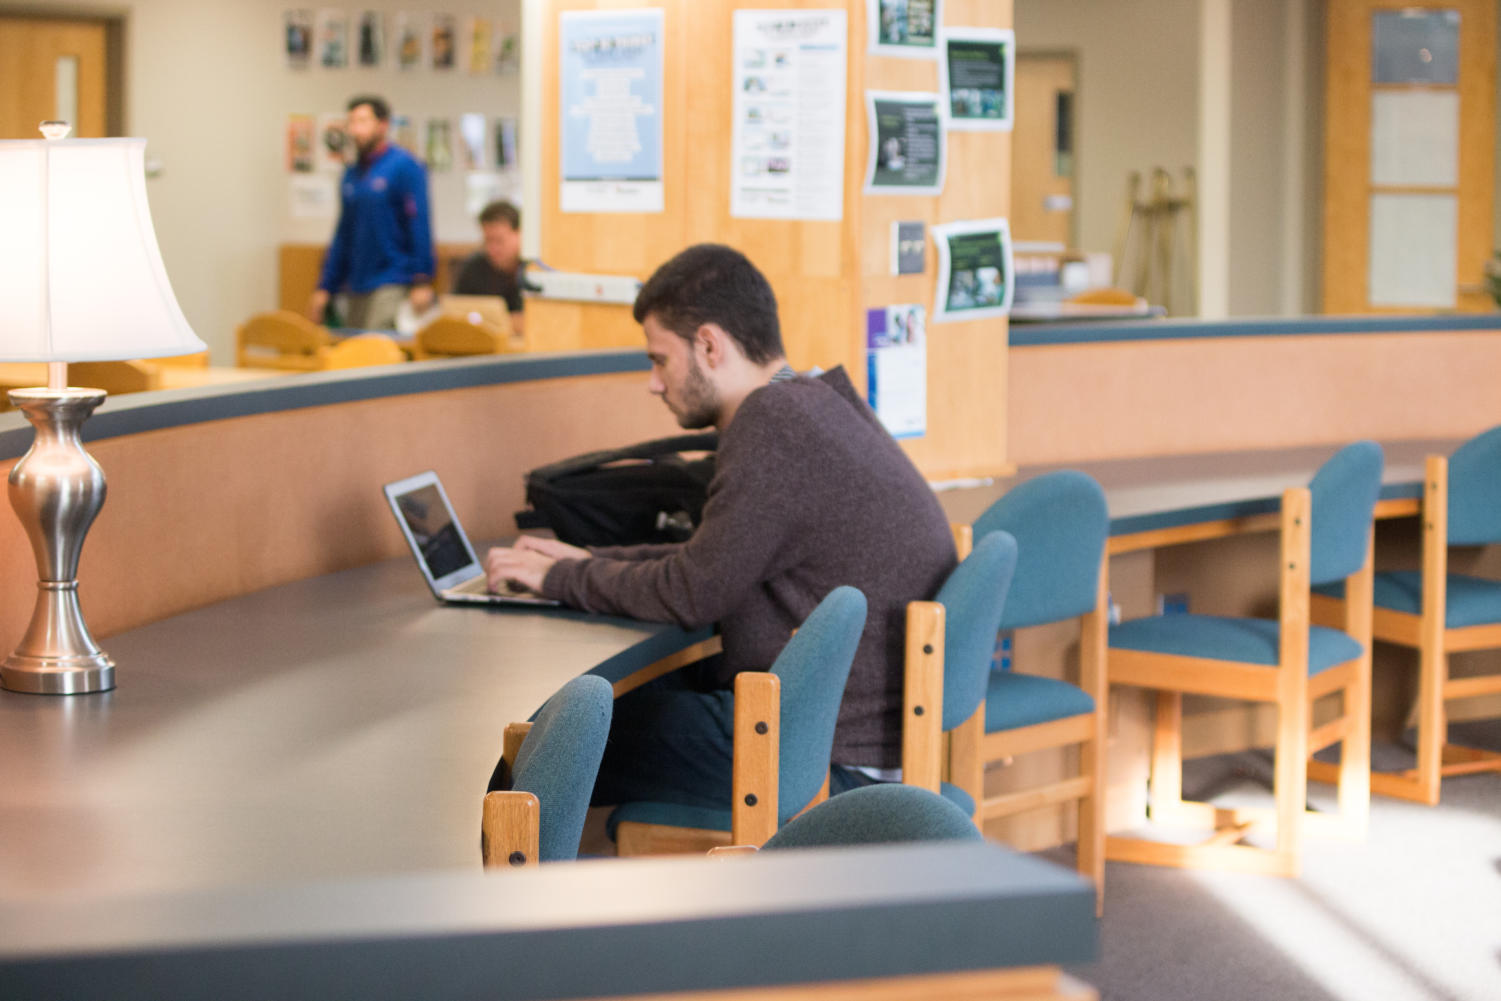 After school, students use the library for a quiet place to study, but with the proposed construction plan this could change. The proposal suggests to change the name to Learning Commons.